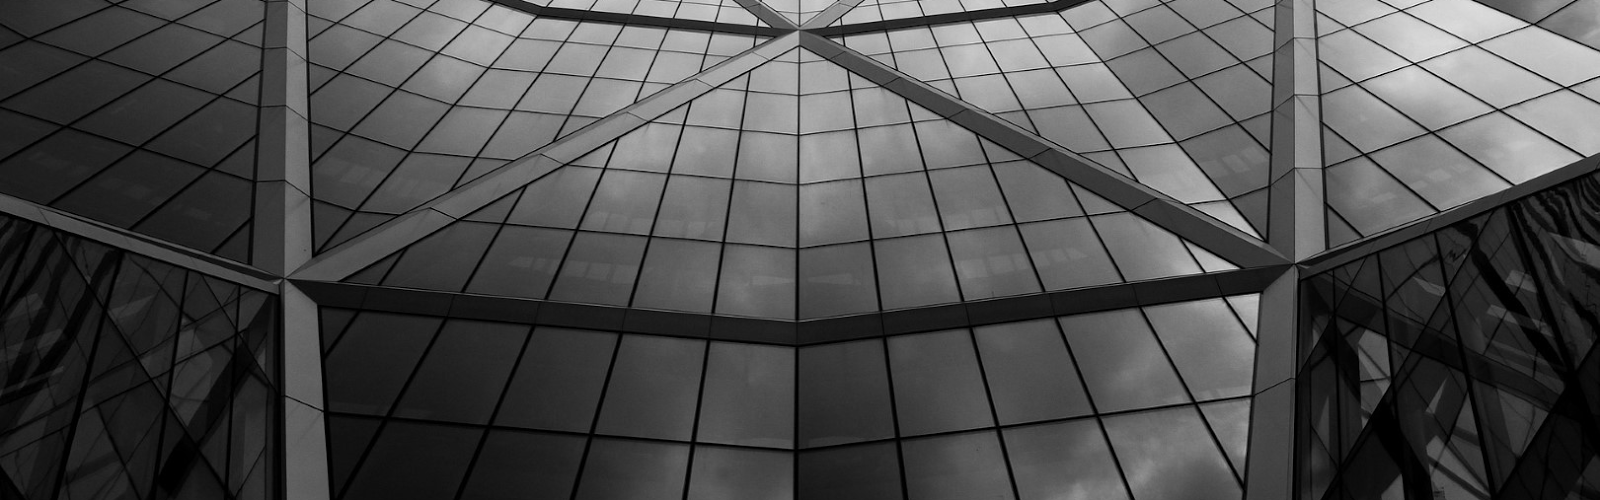 glass building black and white photo